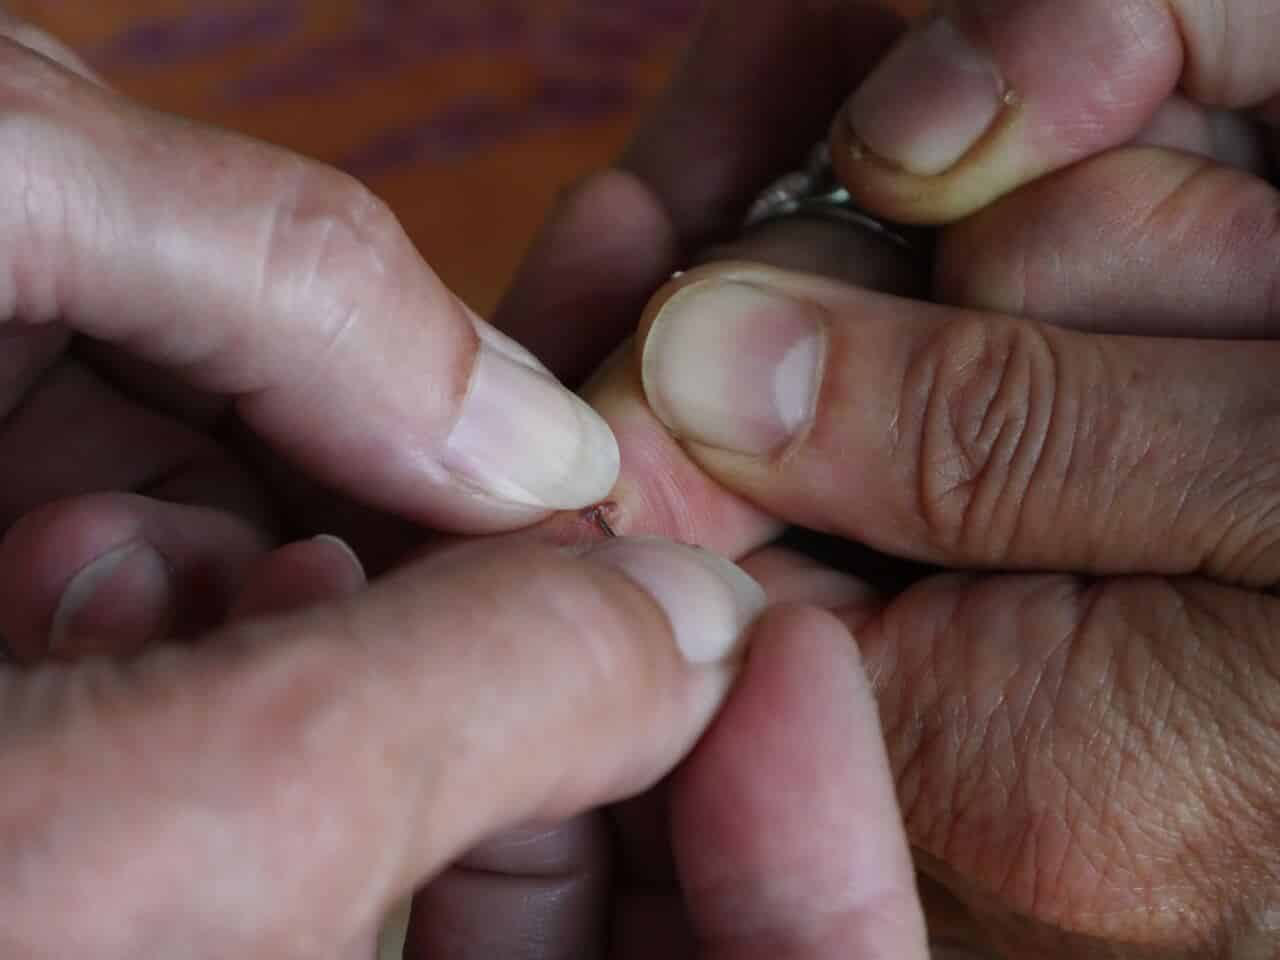 Closeup of wound on a toe